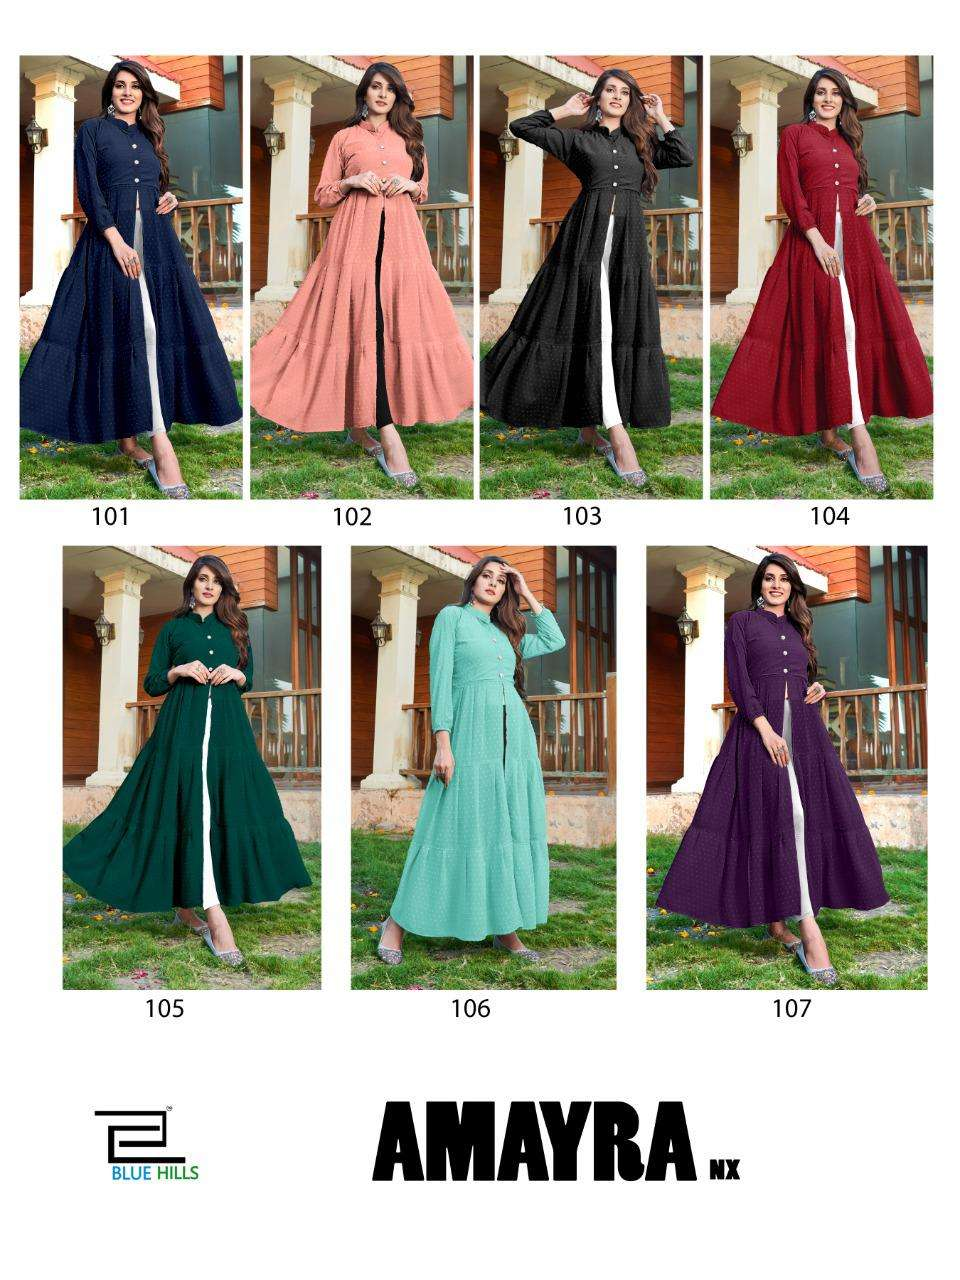 BLUE HILLS AMAYRA NX DESIGNER BUBBLE GEORGETTE WITH LONG SLEEVES AND CENTER CUT LONG GOWNS WHOLESALE